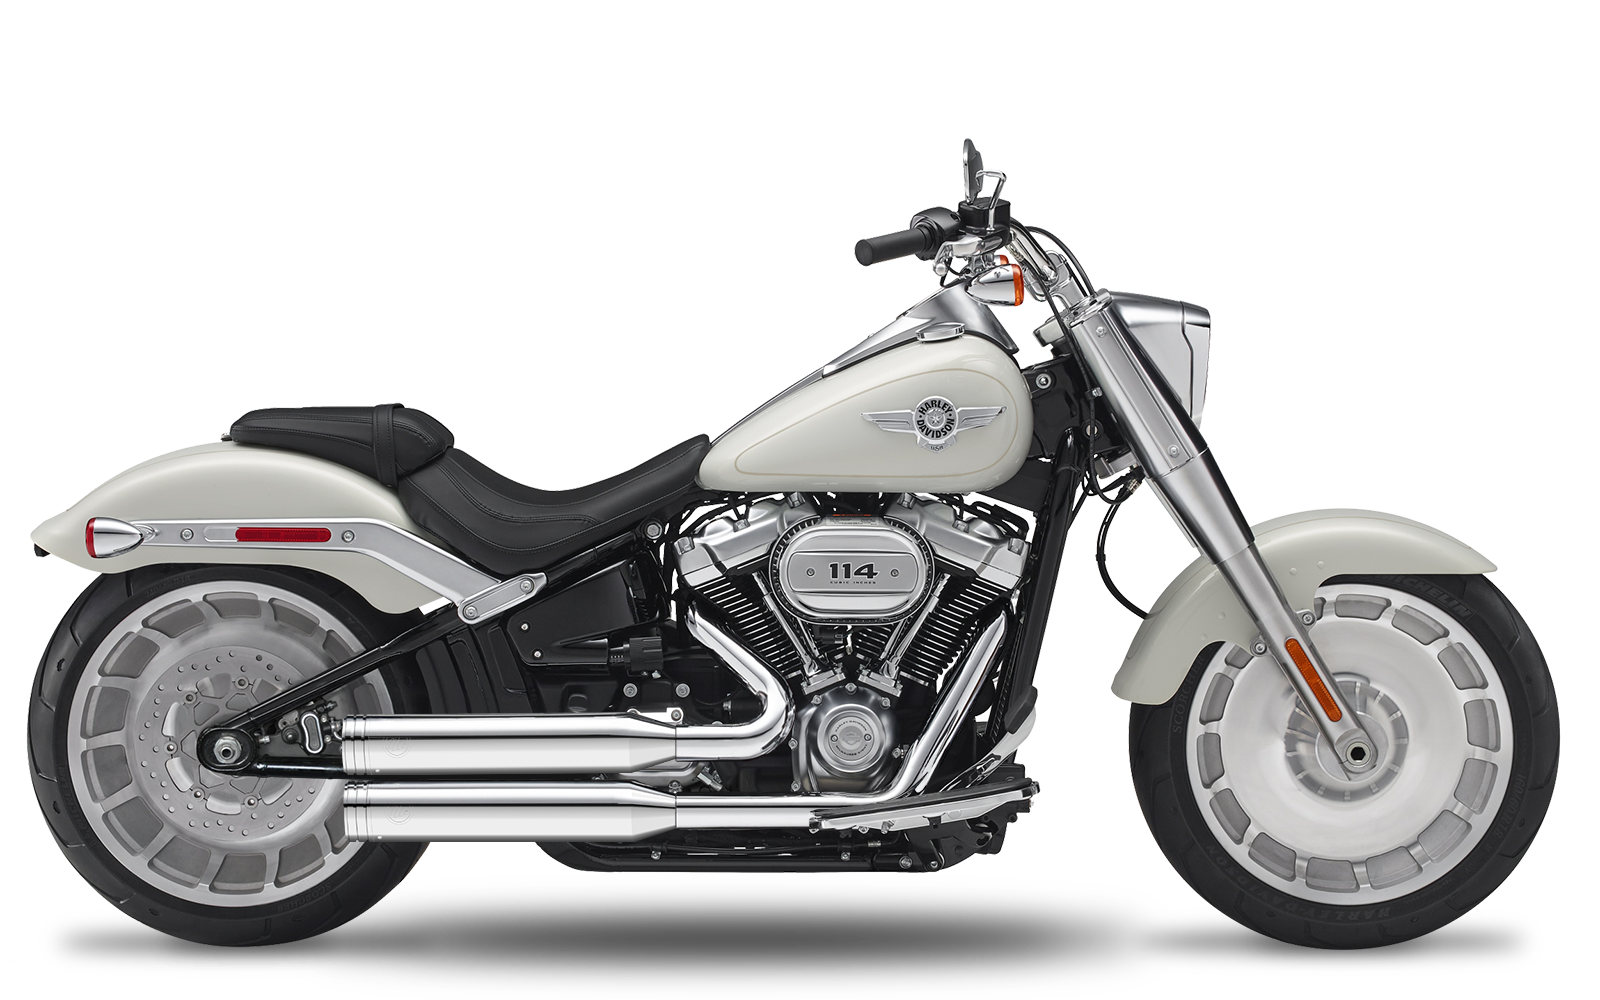 Softail - Fat Boy - ME107 - 2018-2020 - Complete systems